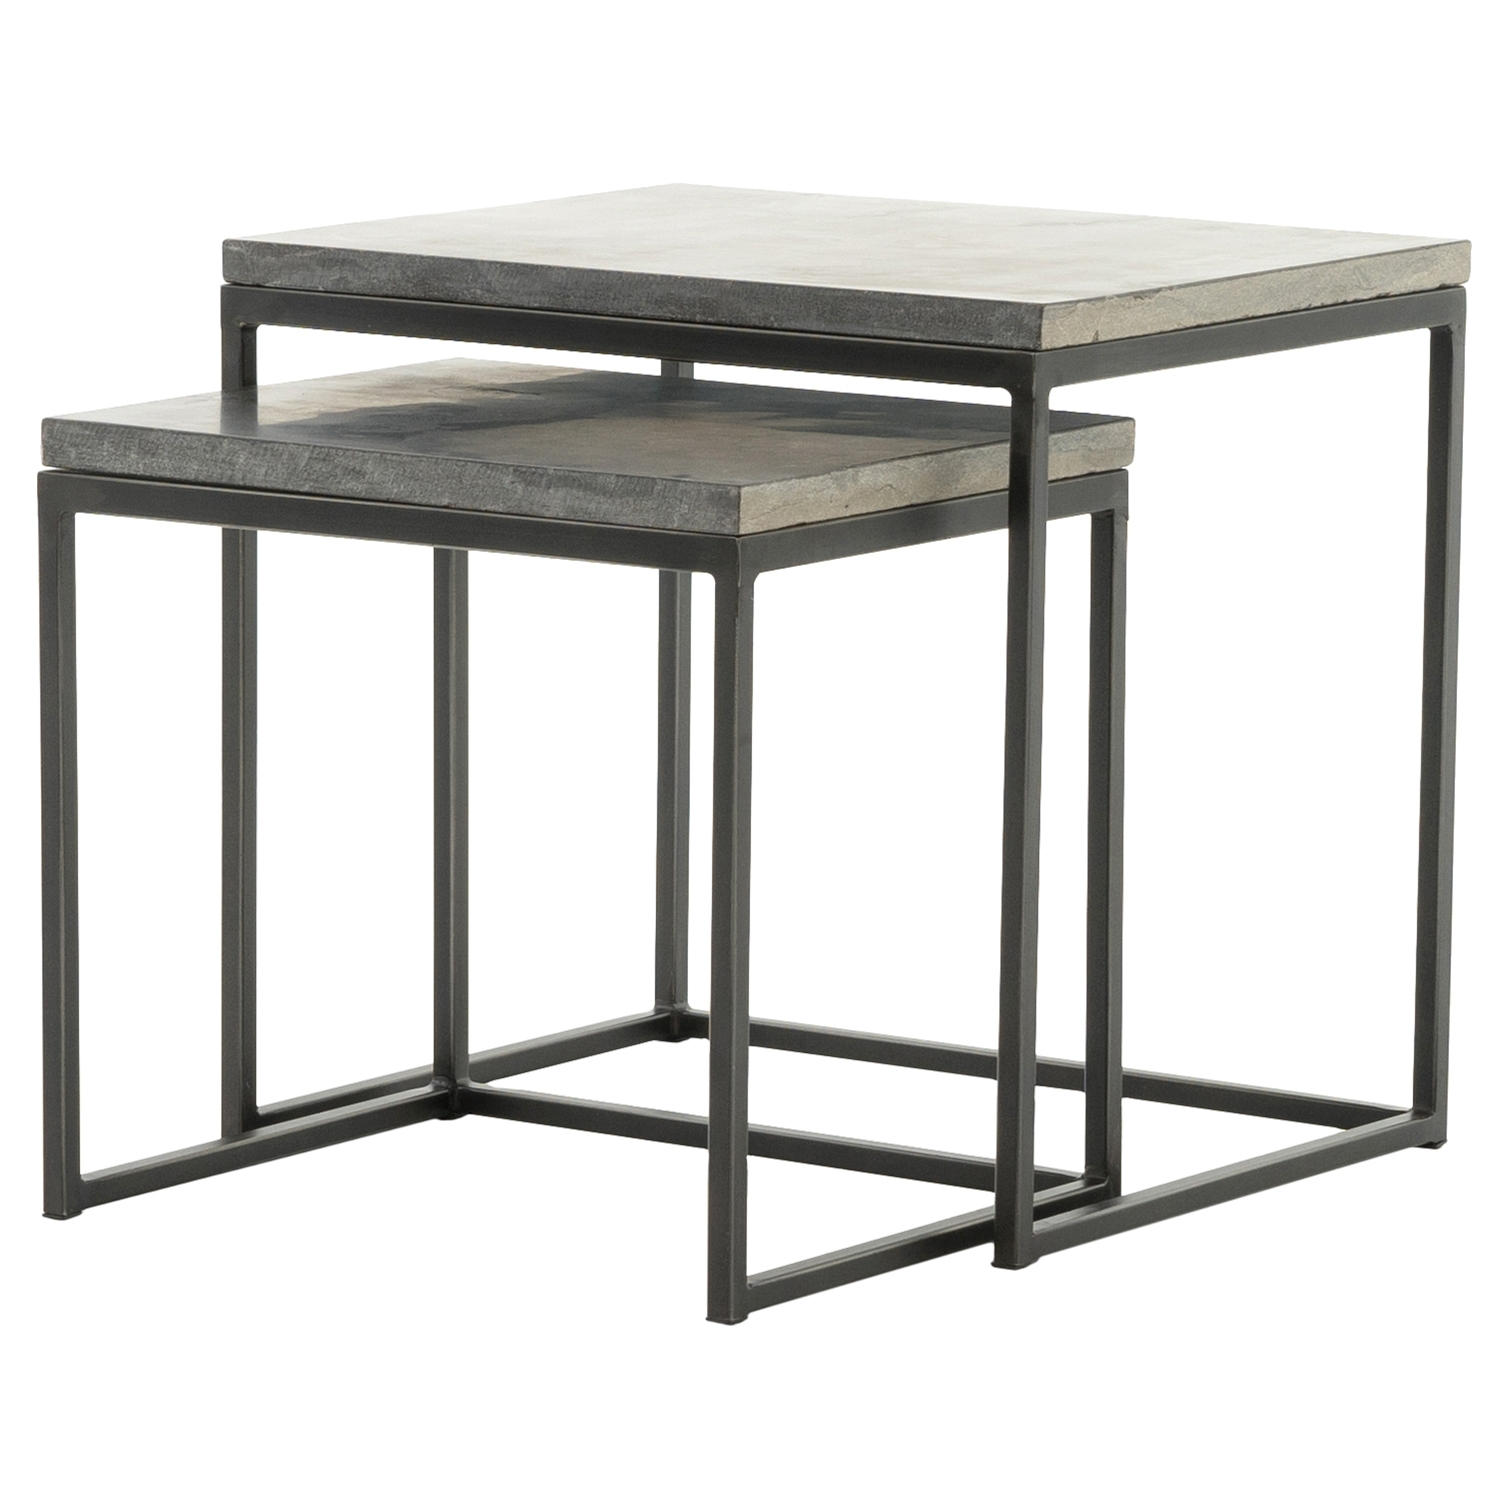 Designer Side & End Tables - Eclectic Side & End Tables | Kathy Kuo Home for Aged Iron Cube Tables (Image 12 of 30)